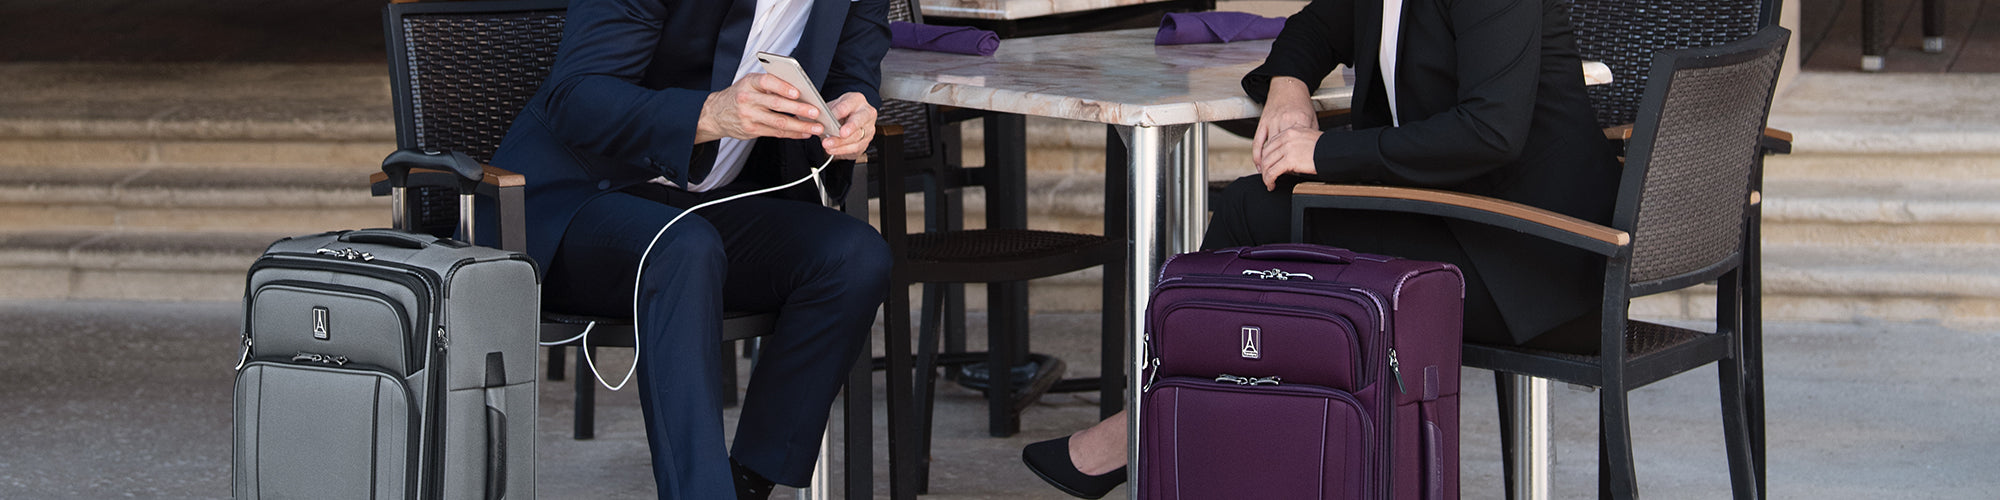 Two people sitting down charging their phone in the USB port on their luggage